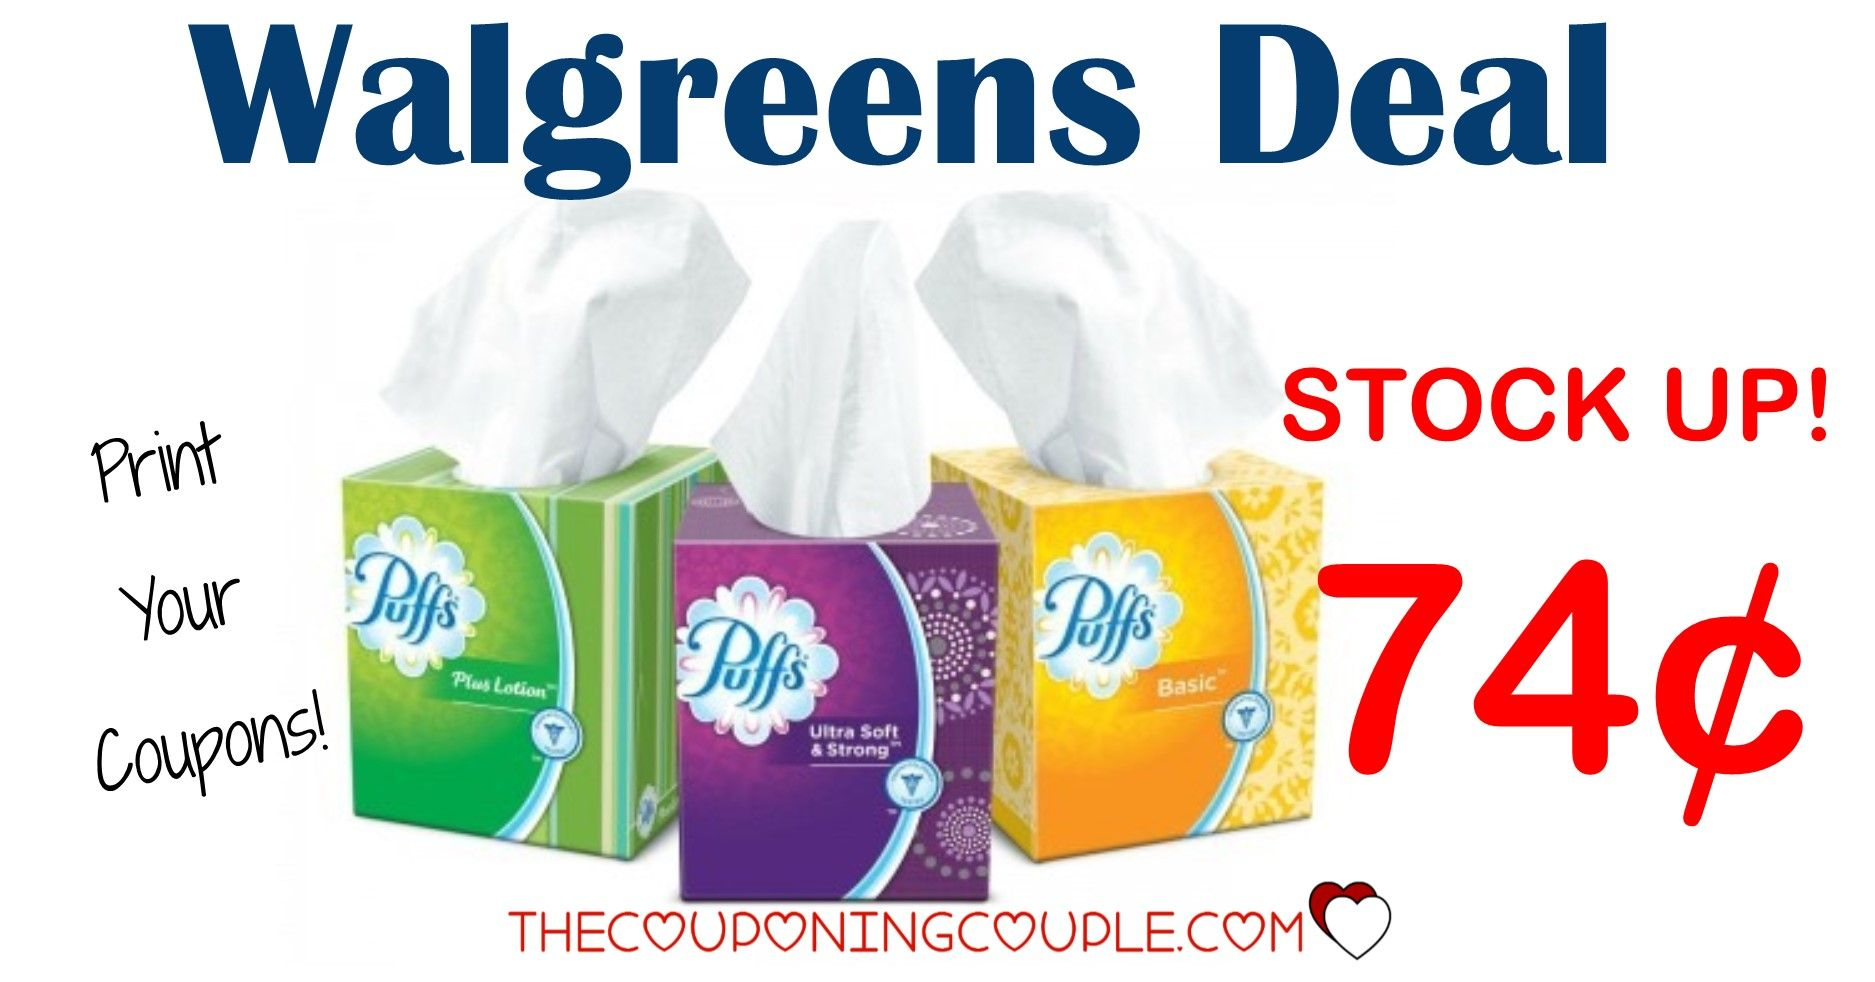 Puffs Facial Tissues Walgreens For 0 99 Thru 5 16 Facial Tissues Walgreens Coupon Matchups